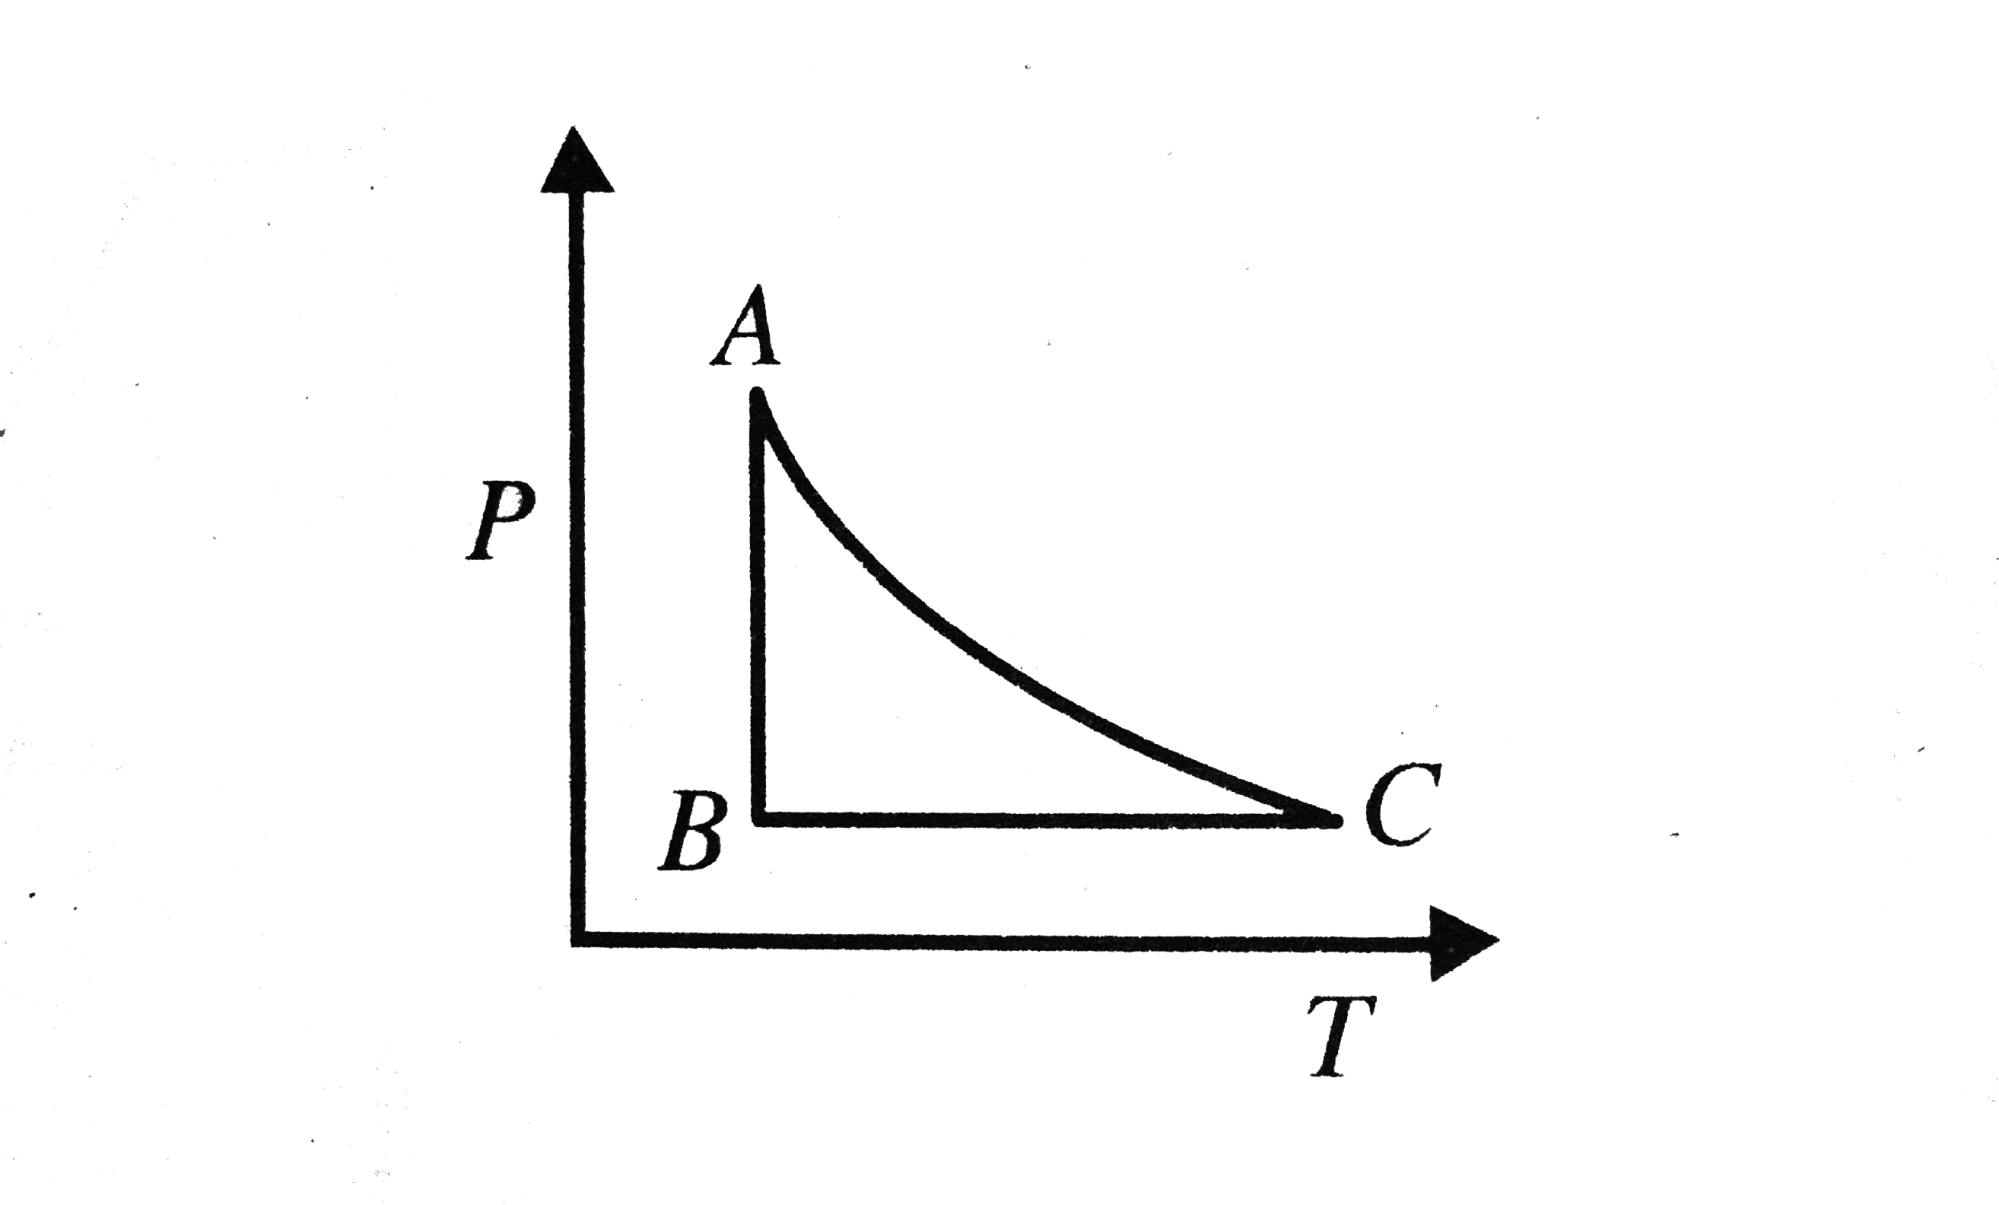 hight resolution of the p t diagram for an ideal gas is shown in figure where ac is an adiabatic process find the corresponding p v diagram